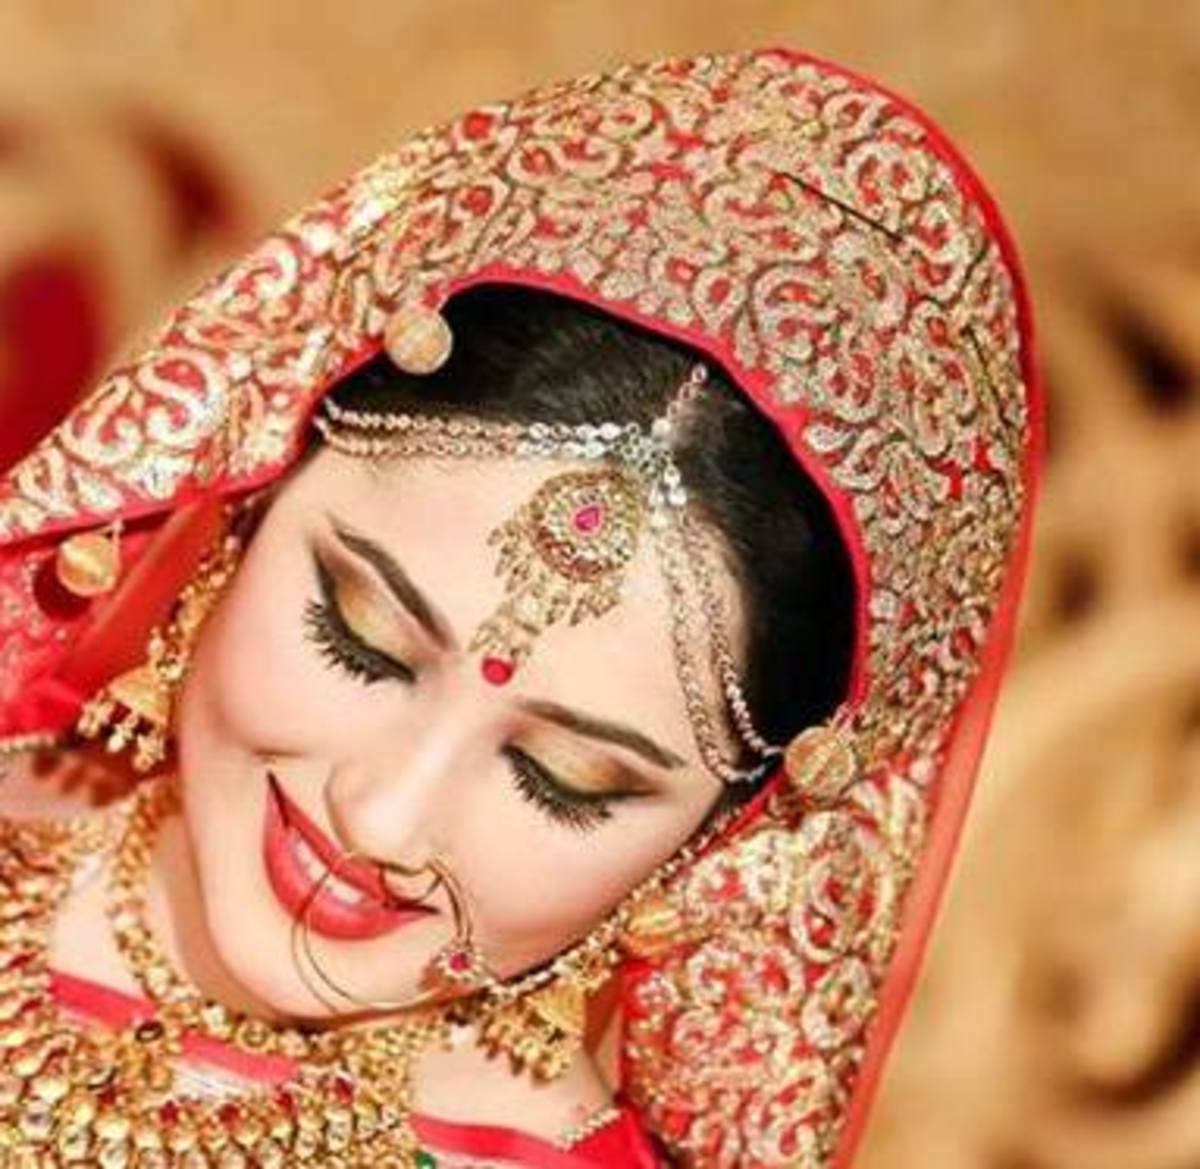 Lovely Bridal Makeup by Farzana Shakil, Bangladesh